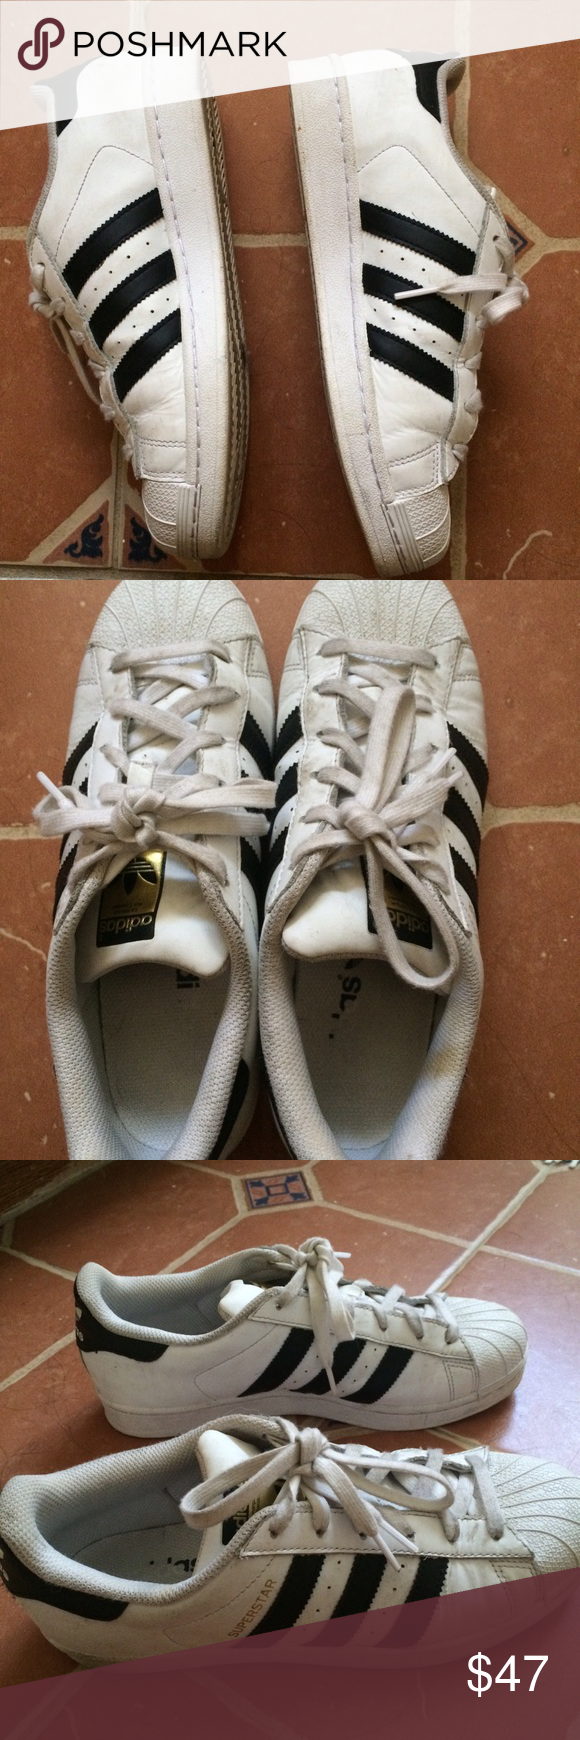 adidas shoe laces replacement